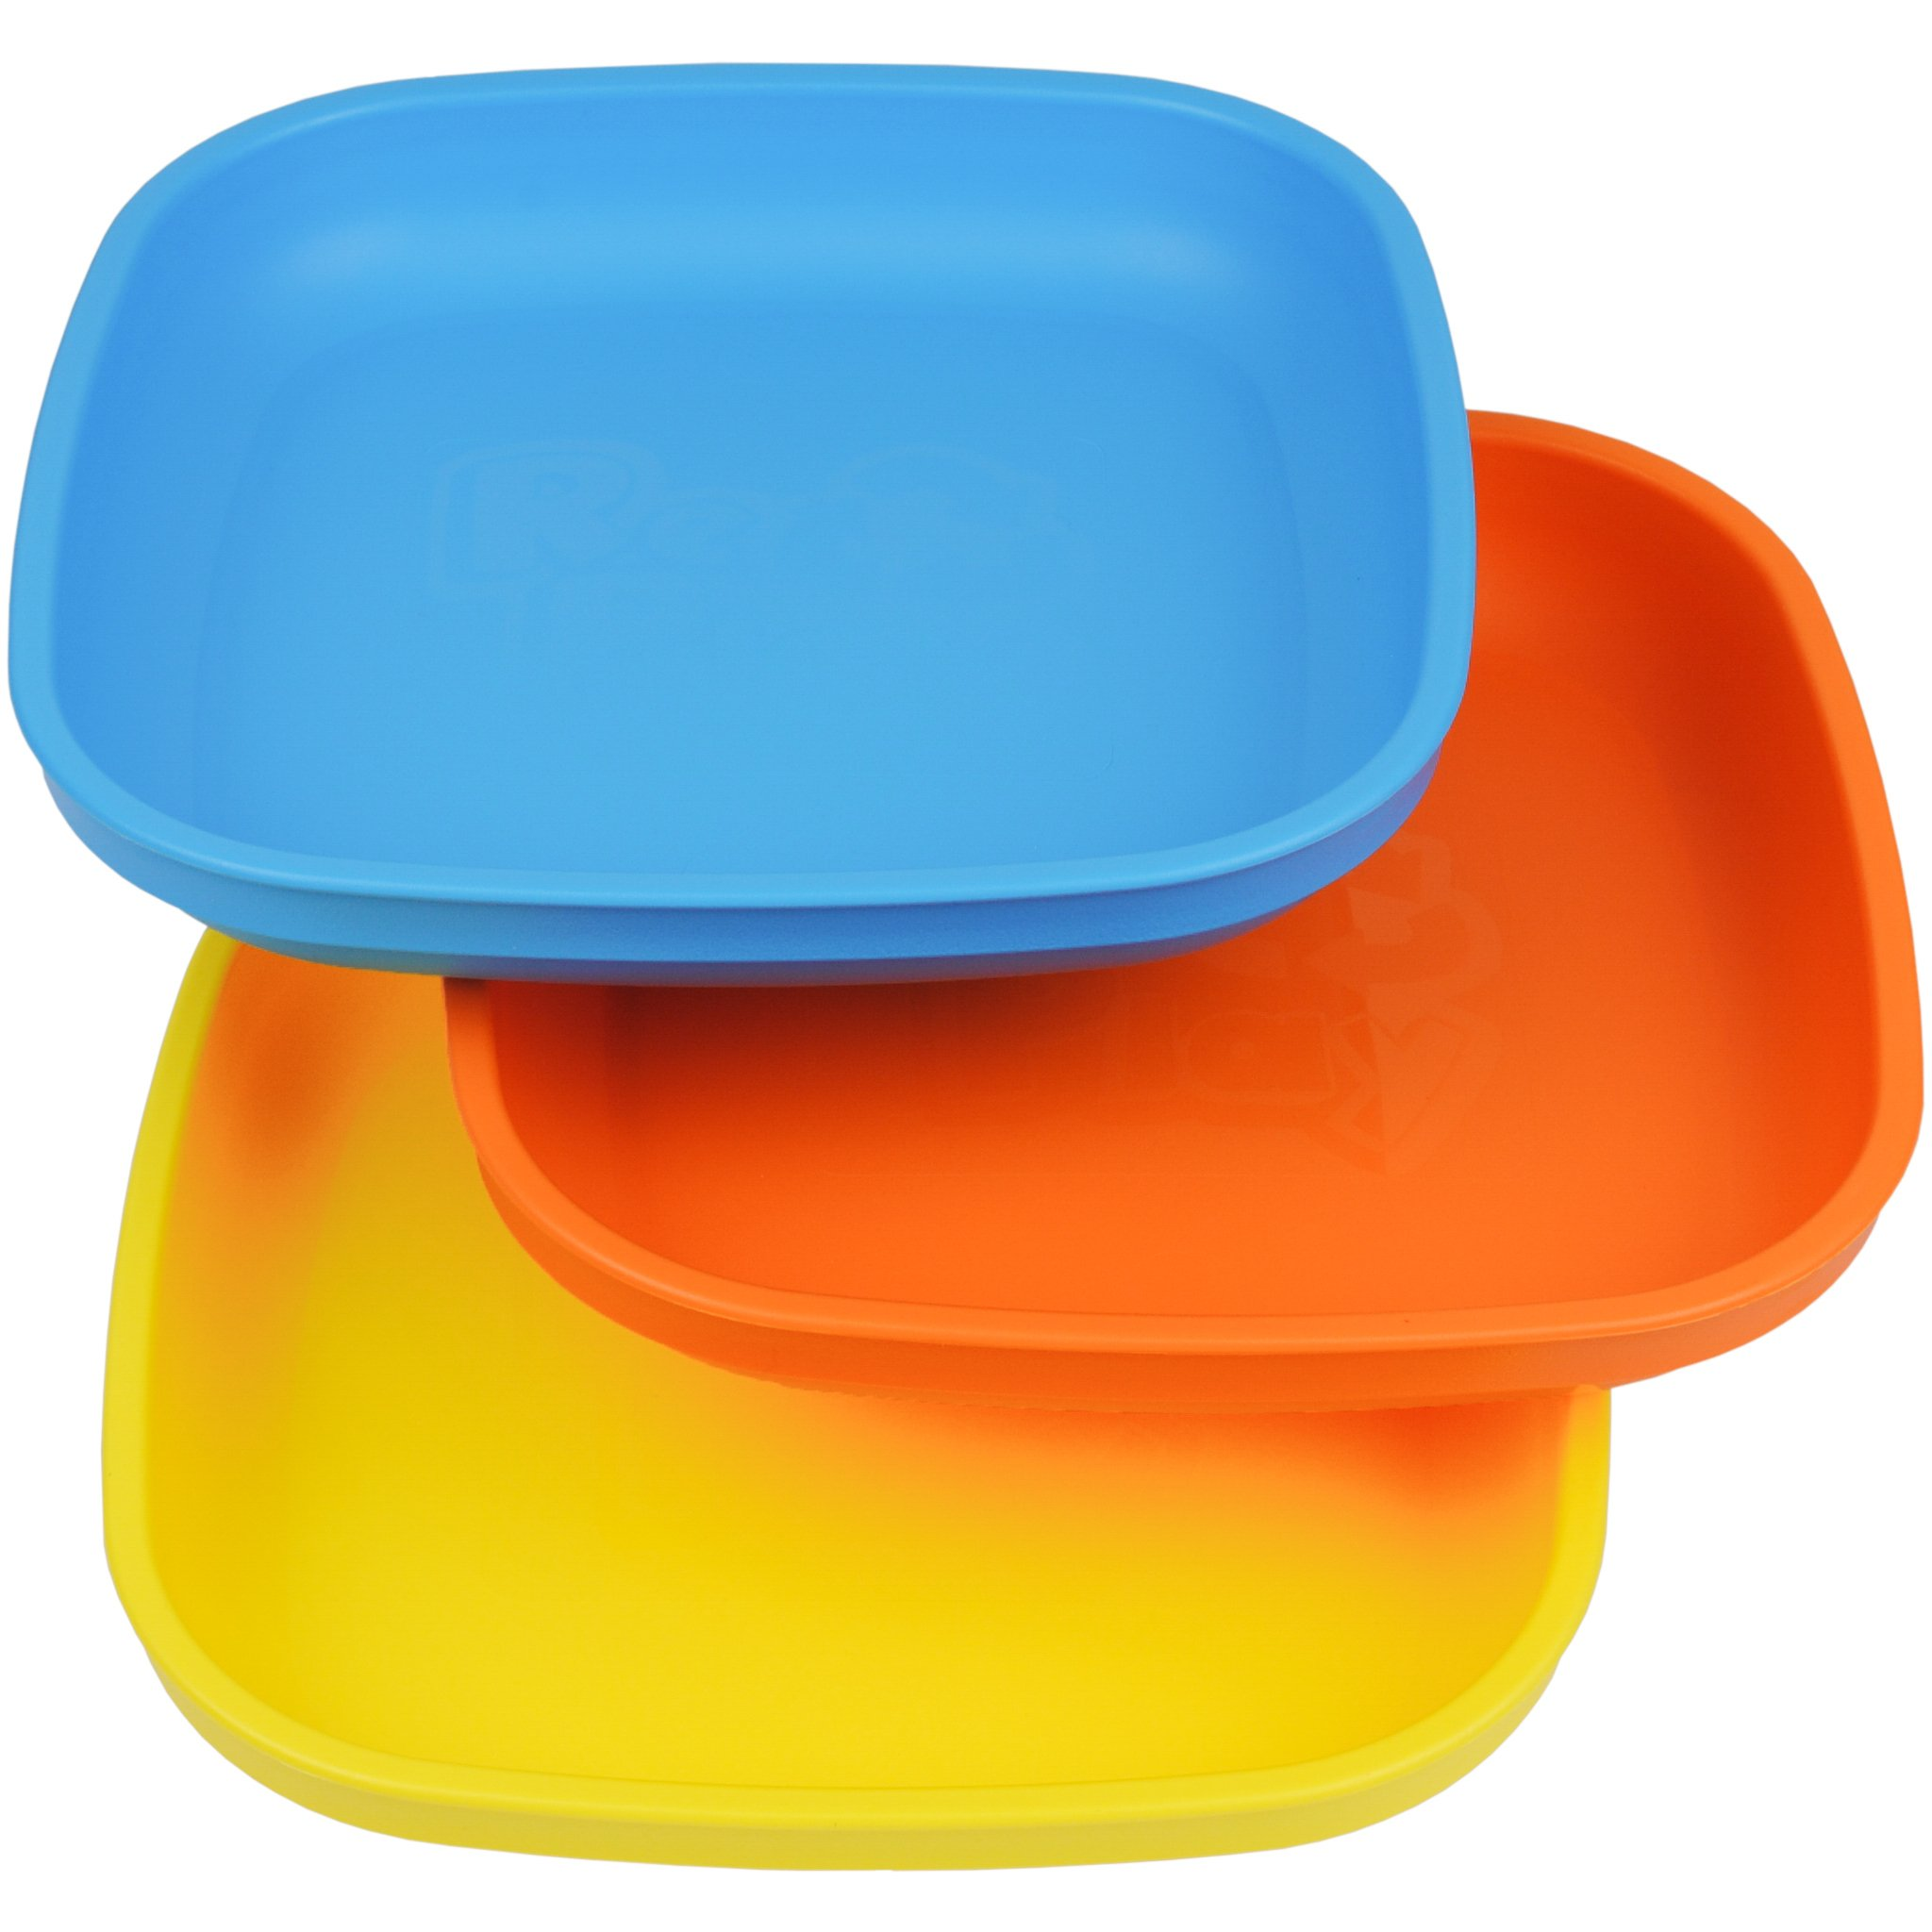 Re-Play Made in USA 3pk Plates with Deep Sides for Easy Baby, Toddler, Child Feeding - Sky Blue, Orange & Yellow (Spring)